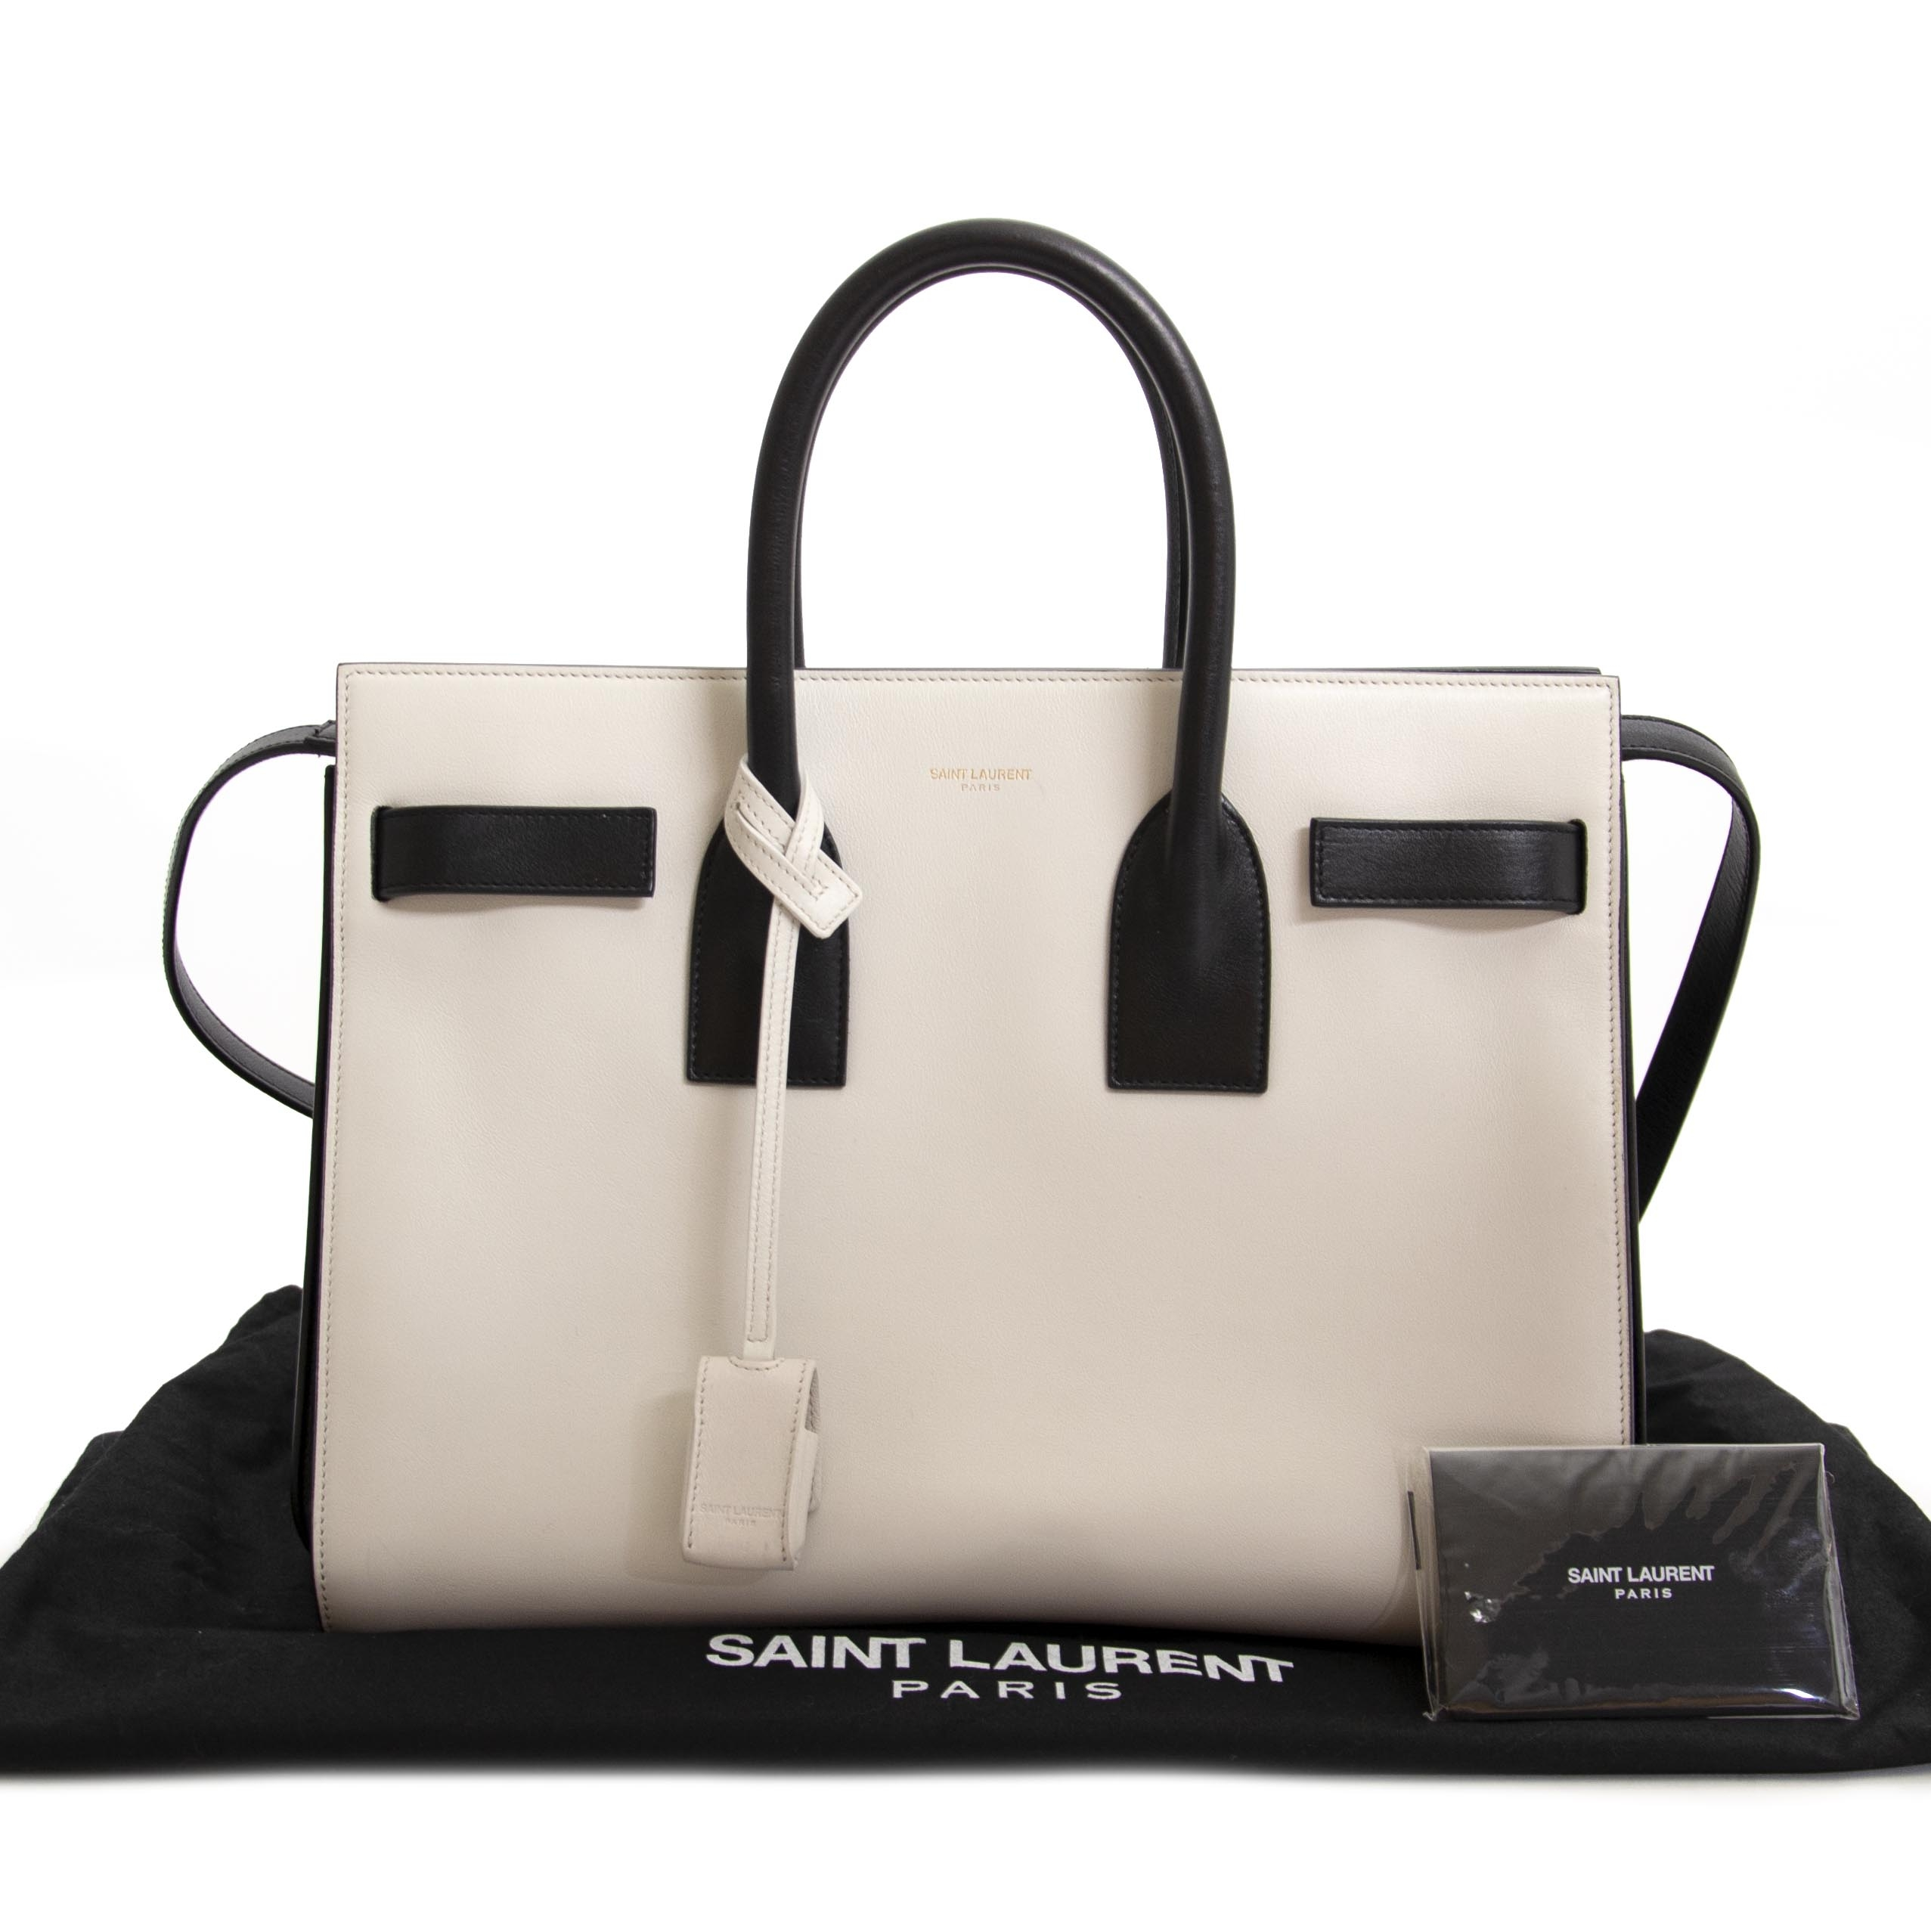 Saint Laurent Black/White Sac De Jour. For the best price at LabelLov. Pour le meilleur prix à LabelLOV. Voor de beste prijs bij LabelLOV.